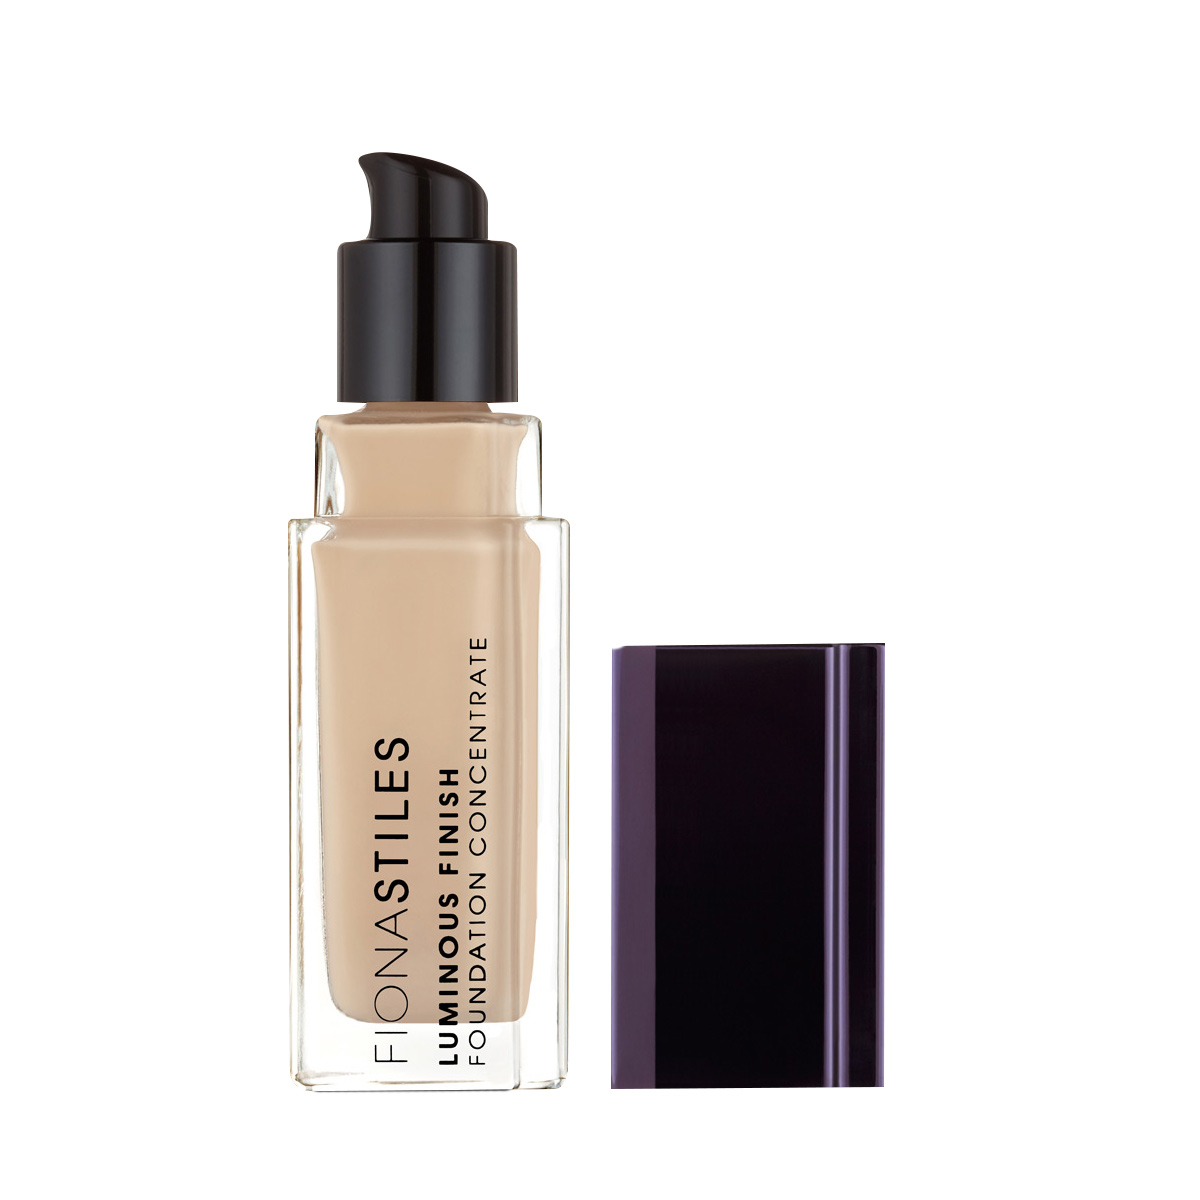 Apply Concealor Before or After Foundation - 01 Embed